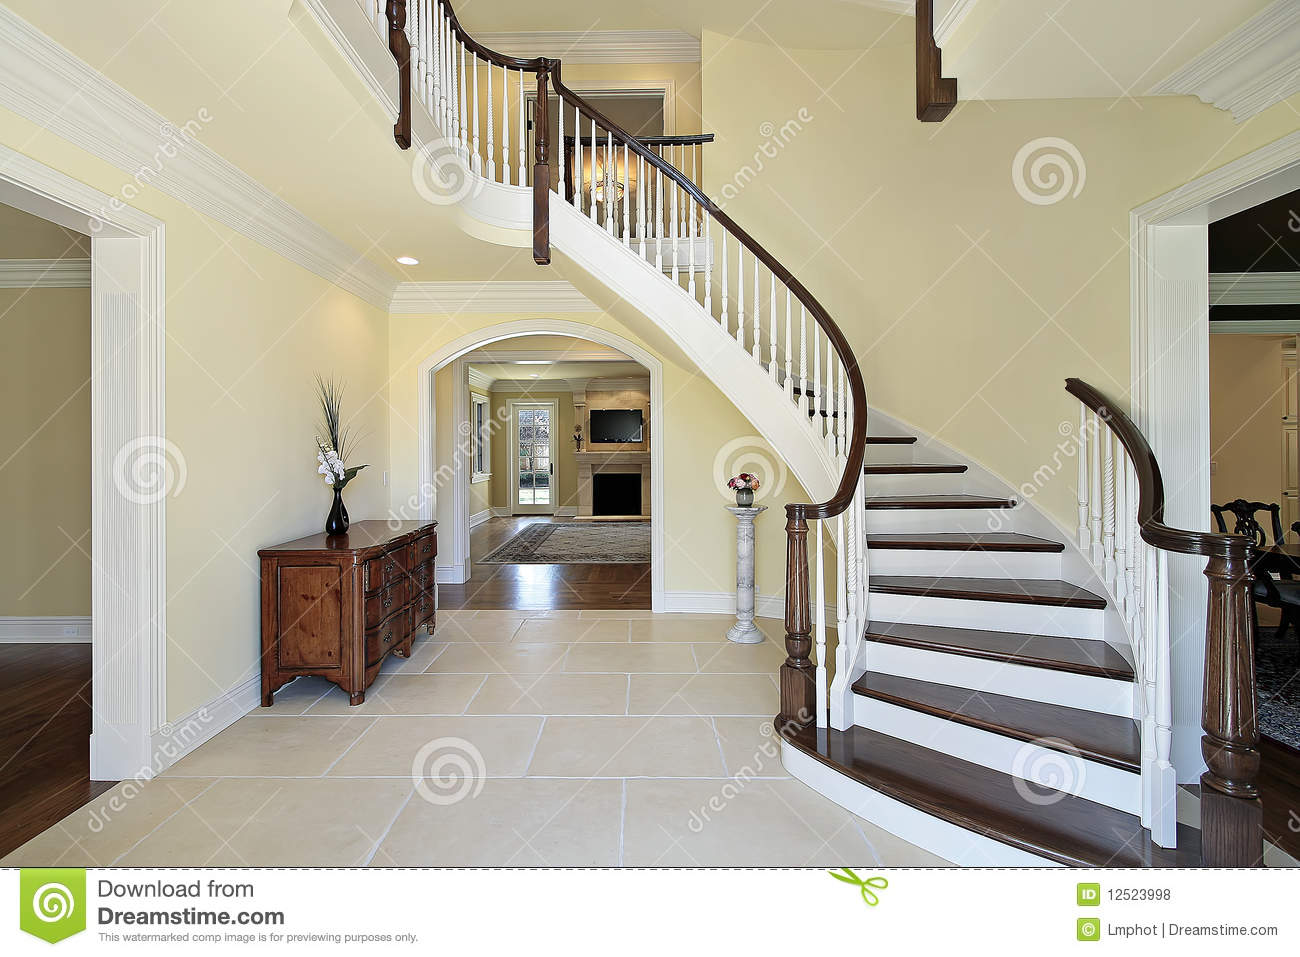 Foyer With Curved Staircase Stock Photo Image Of Room